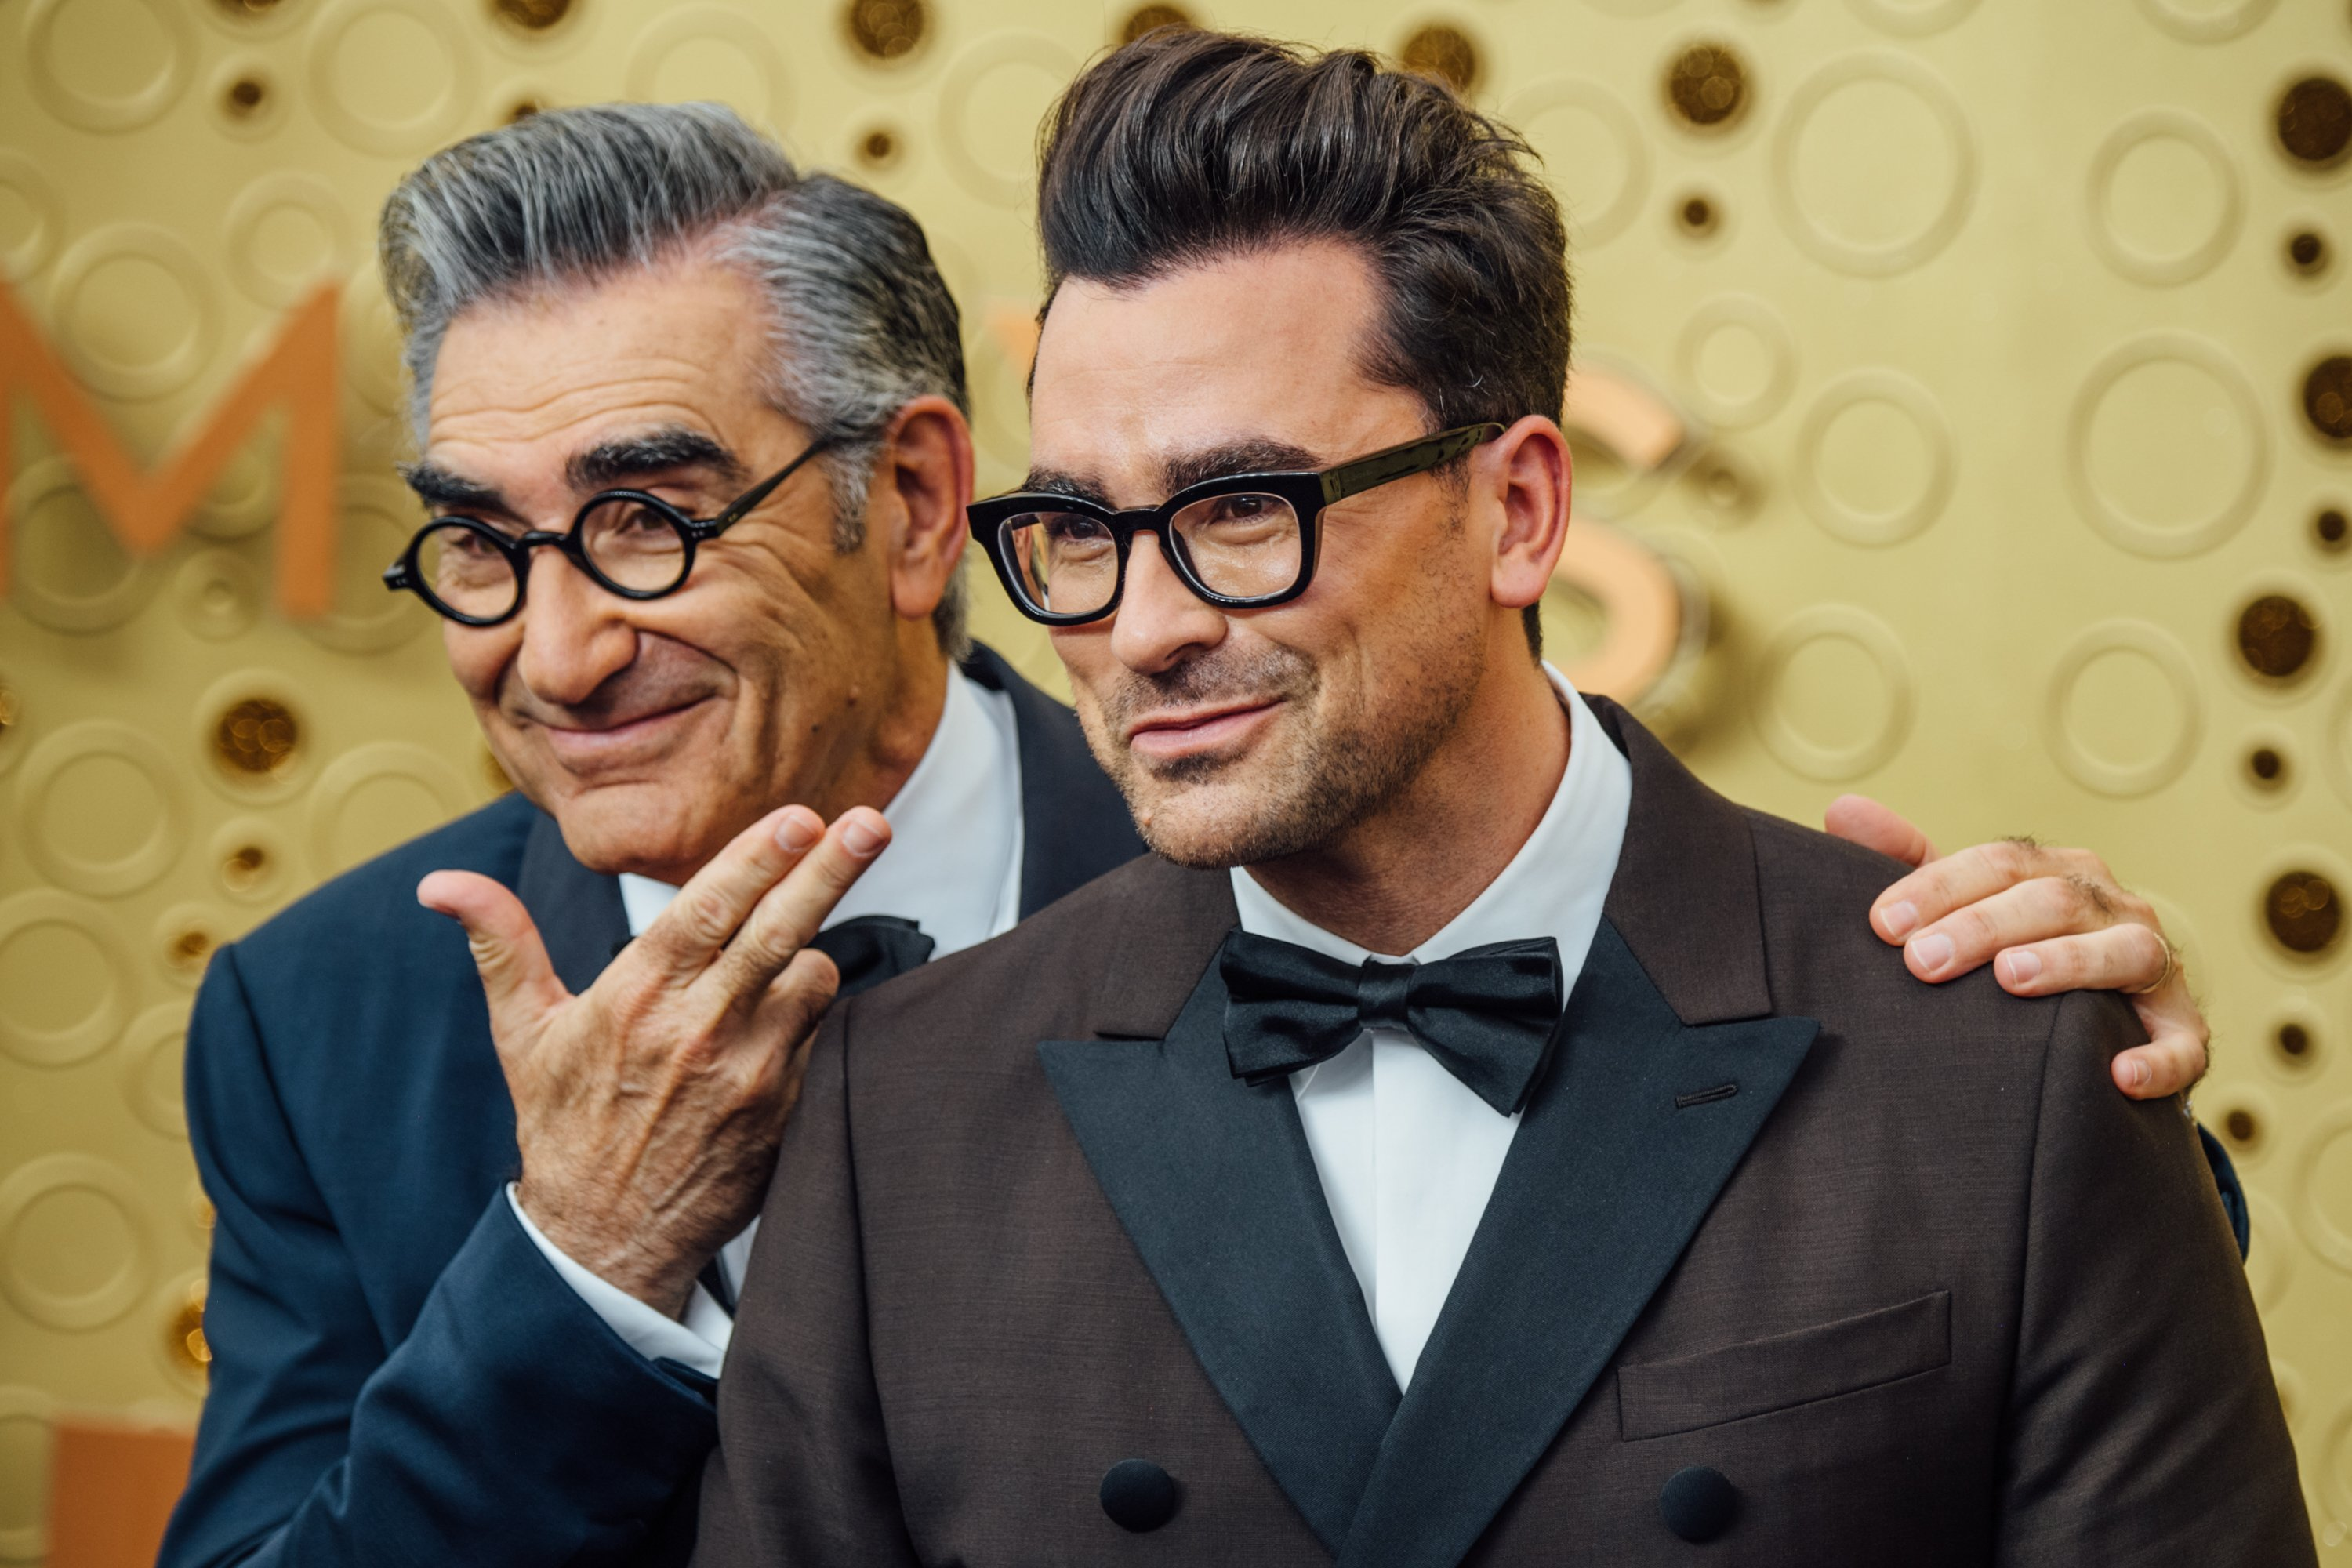 Eugene Levy and Dan Levy at the 71st Emmy Awards at Microsoft Theater in 2019 in Los Angeles. | Photo: Getty Images